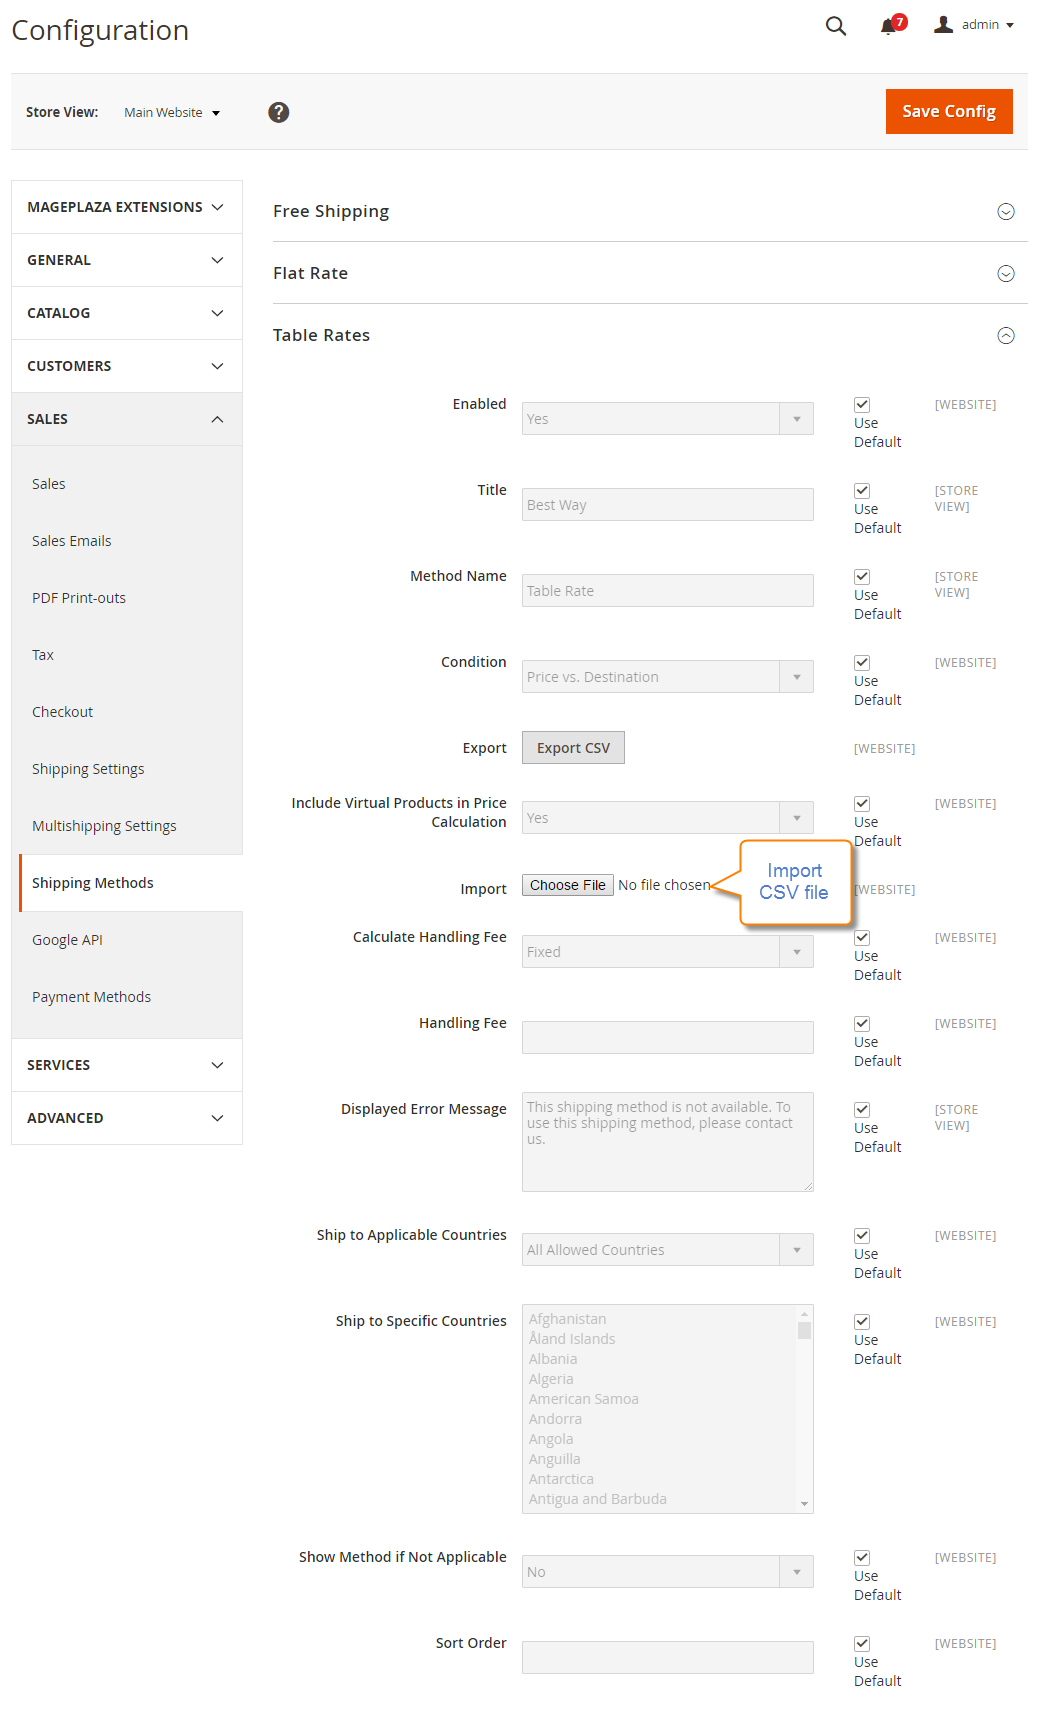 How to Configure Table Rates Shipping Method Import CSV file